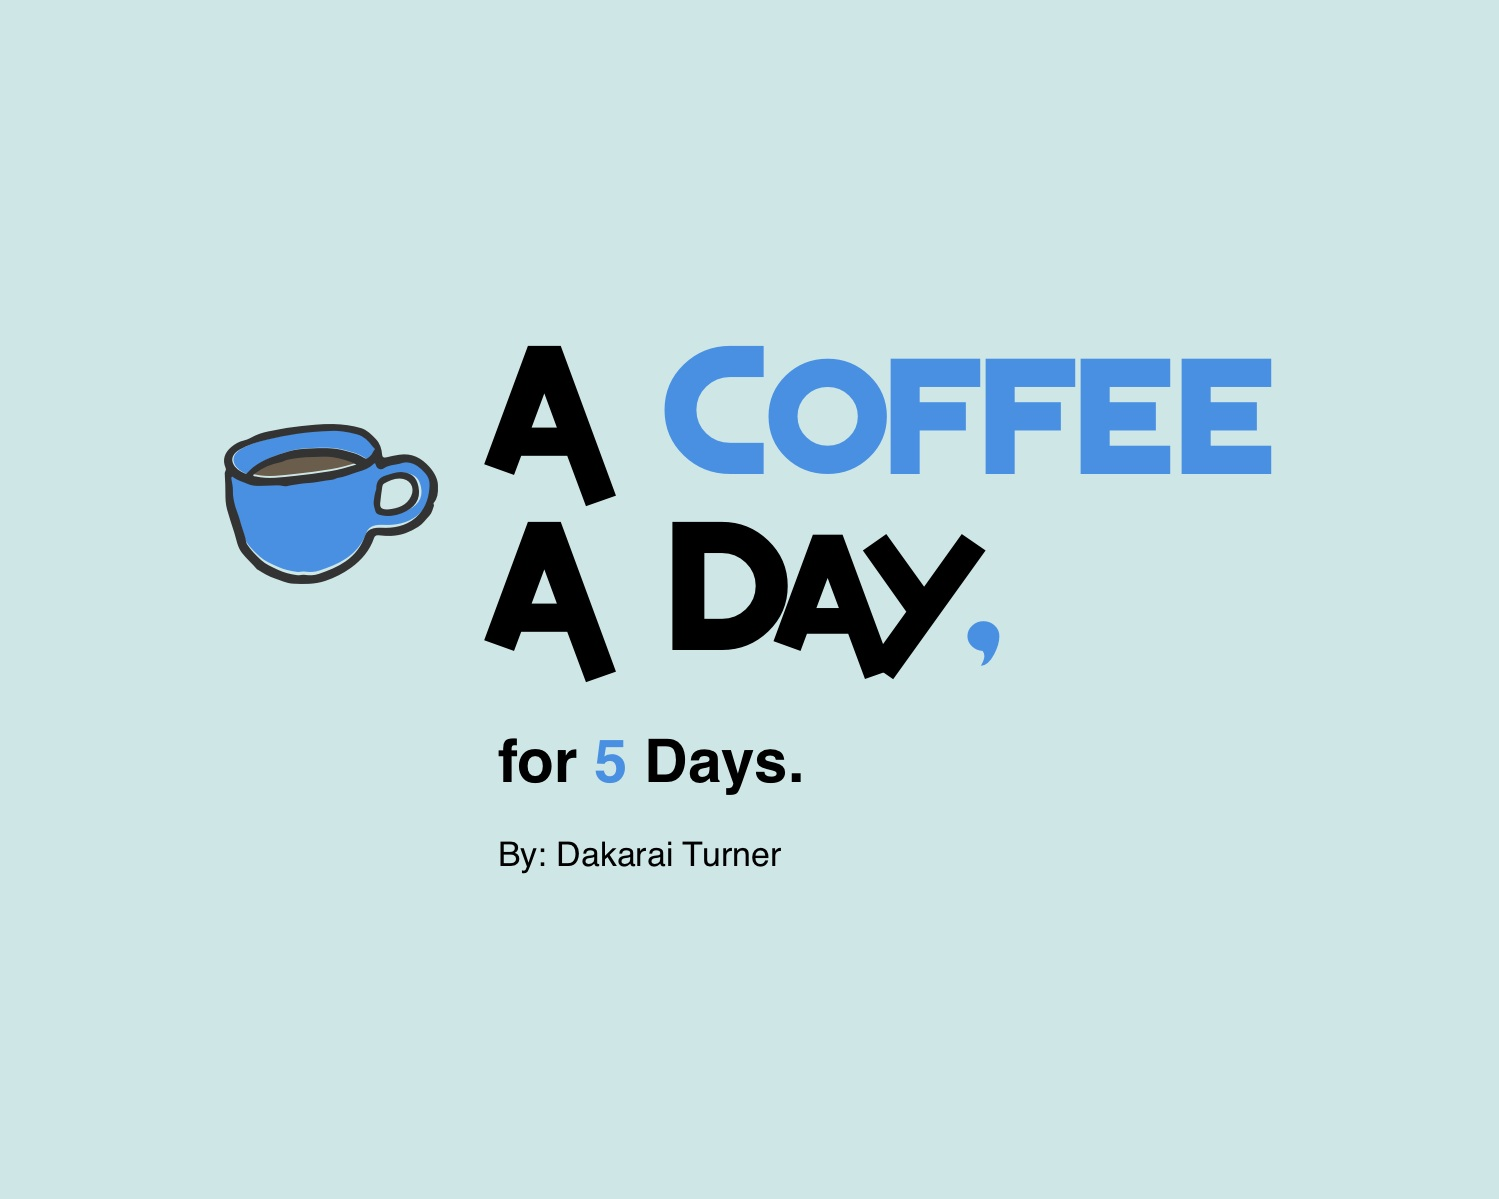 A coffee a day, for 5 days - Informational Interview Project